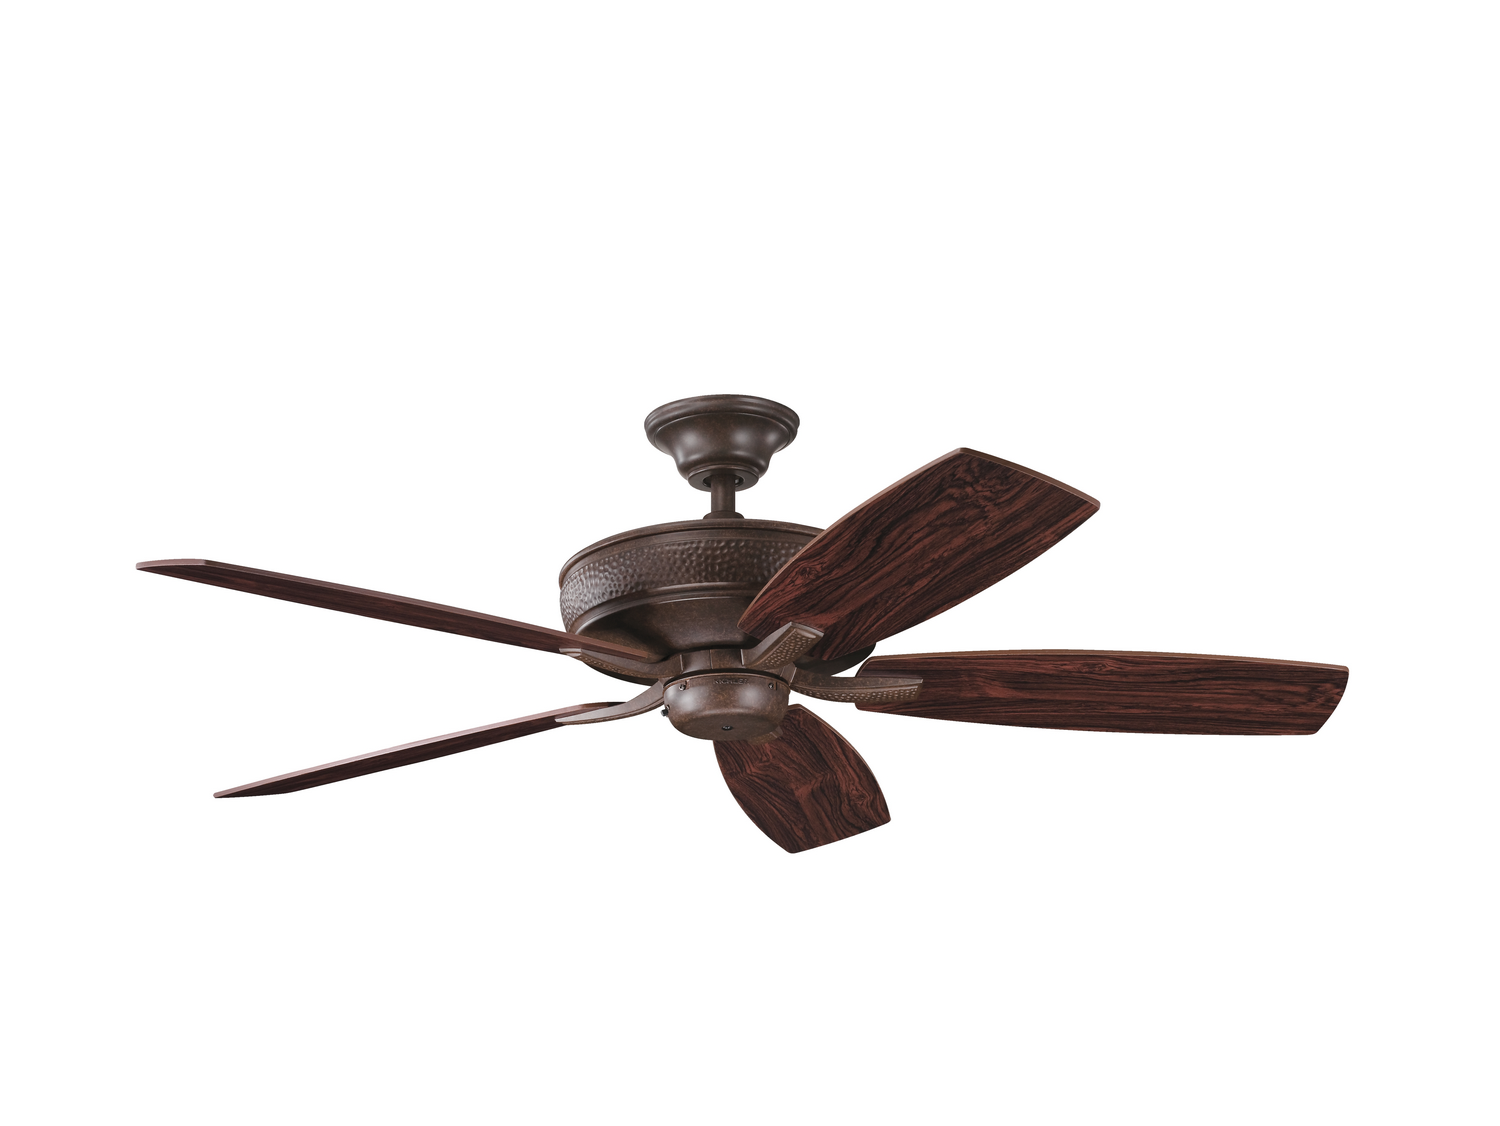 52 inchCeiling Fan from the II collection by Kichler 339013TZ